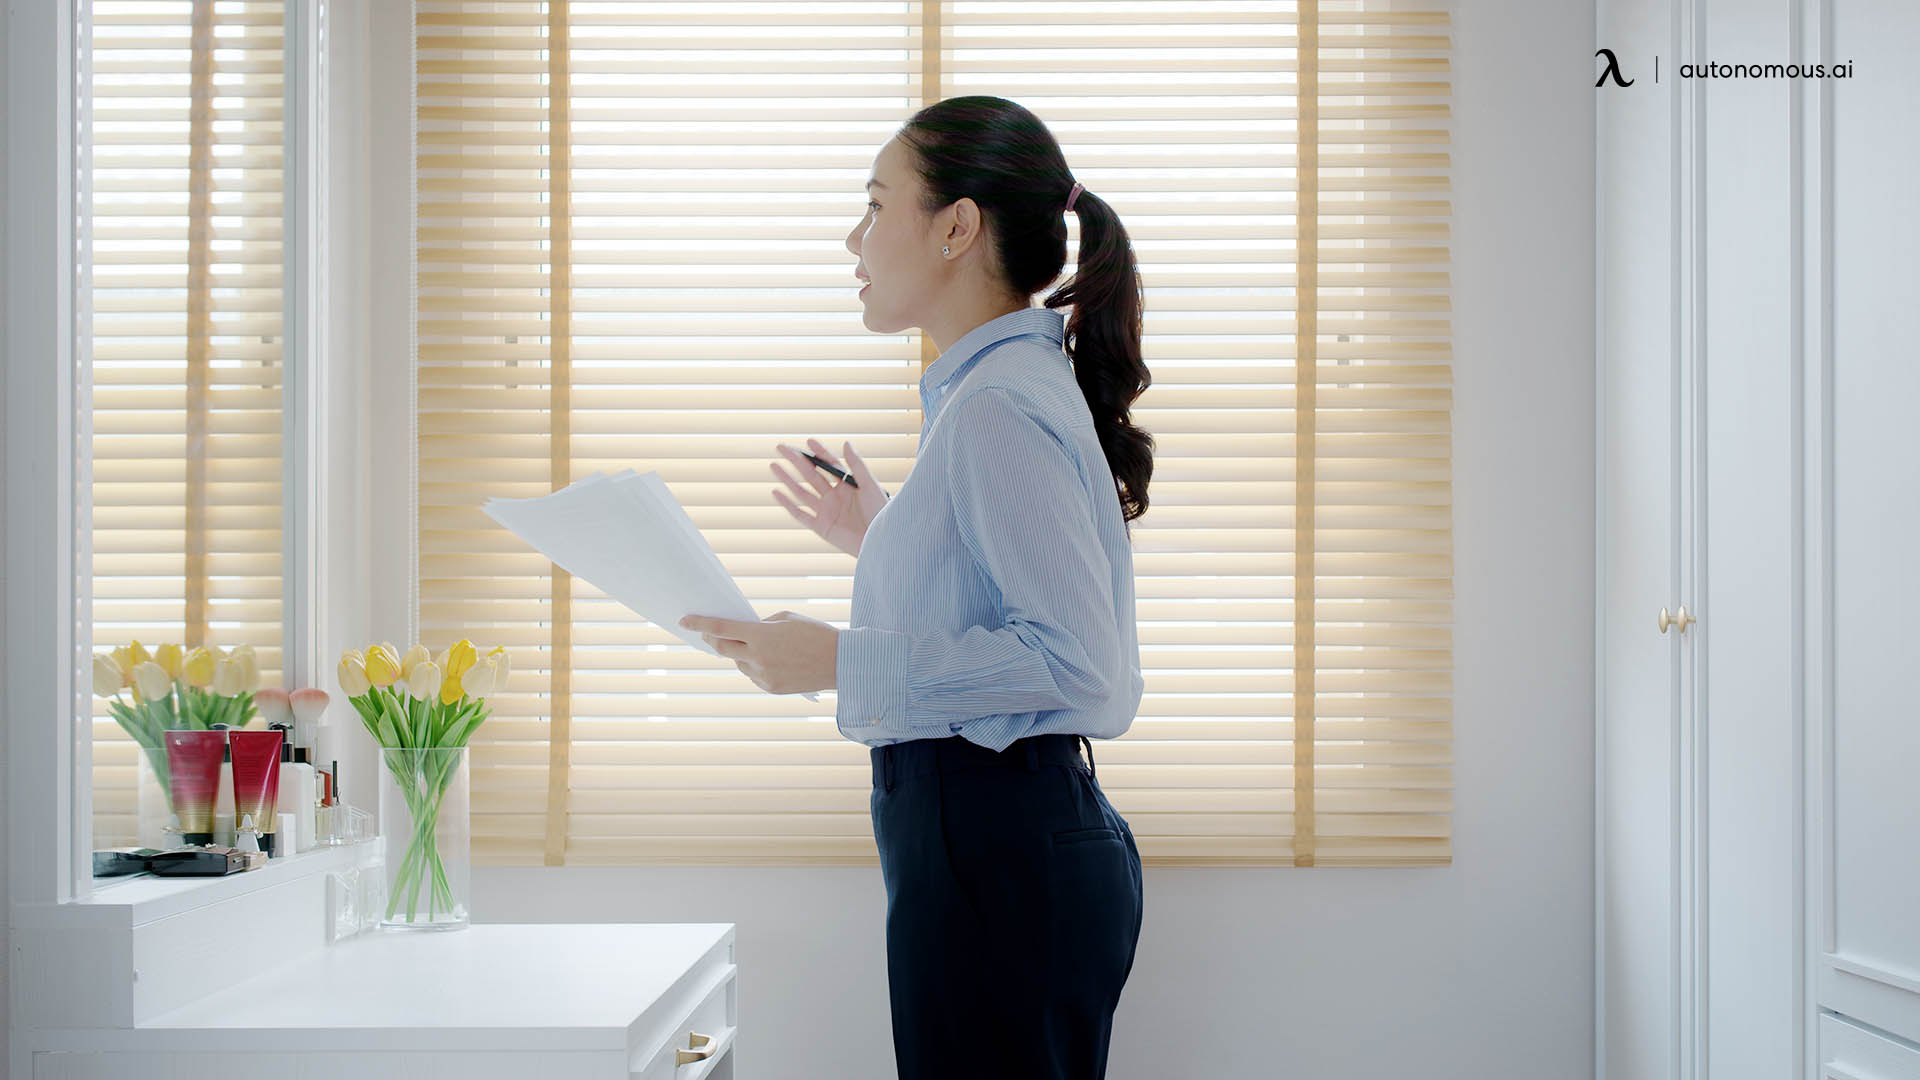 Practice Repetitively Not Just on The Night Before Your Interview